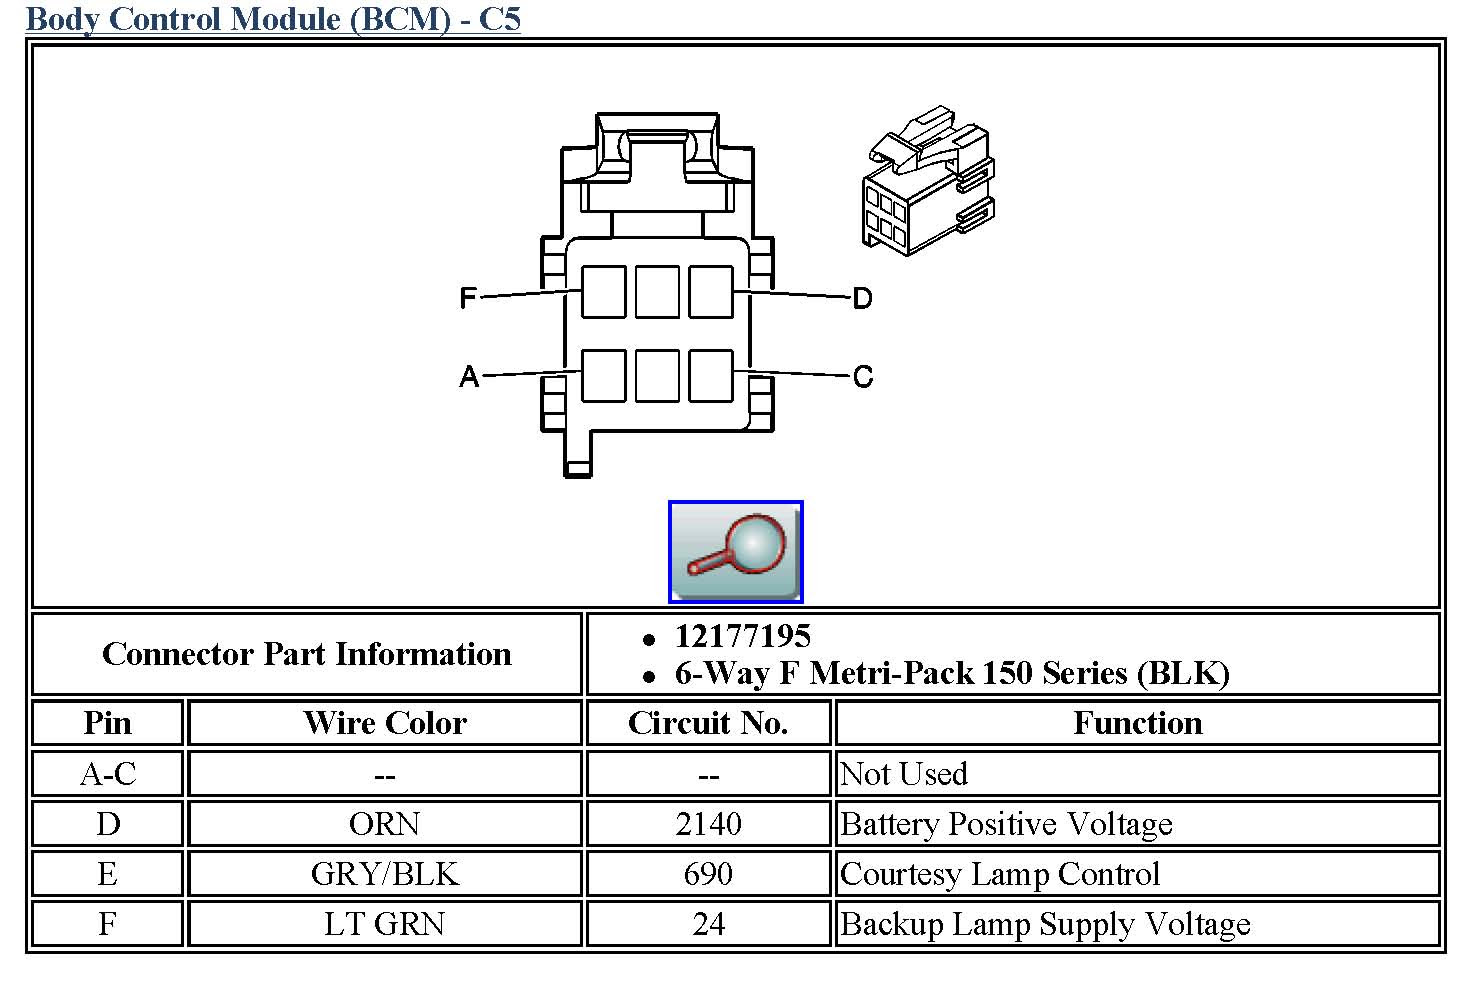 Gm Body Control Module Wiring Diagram Free Wiring Diagram